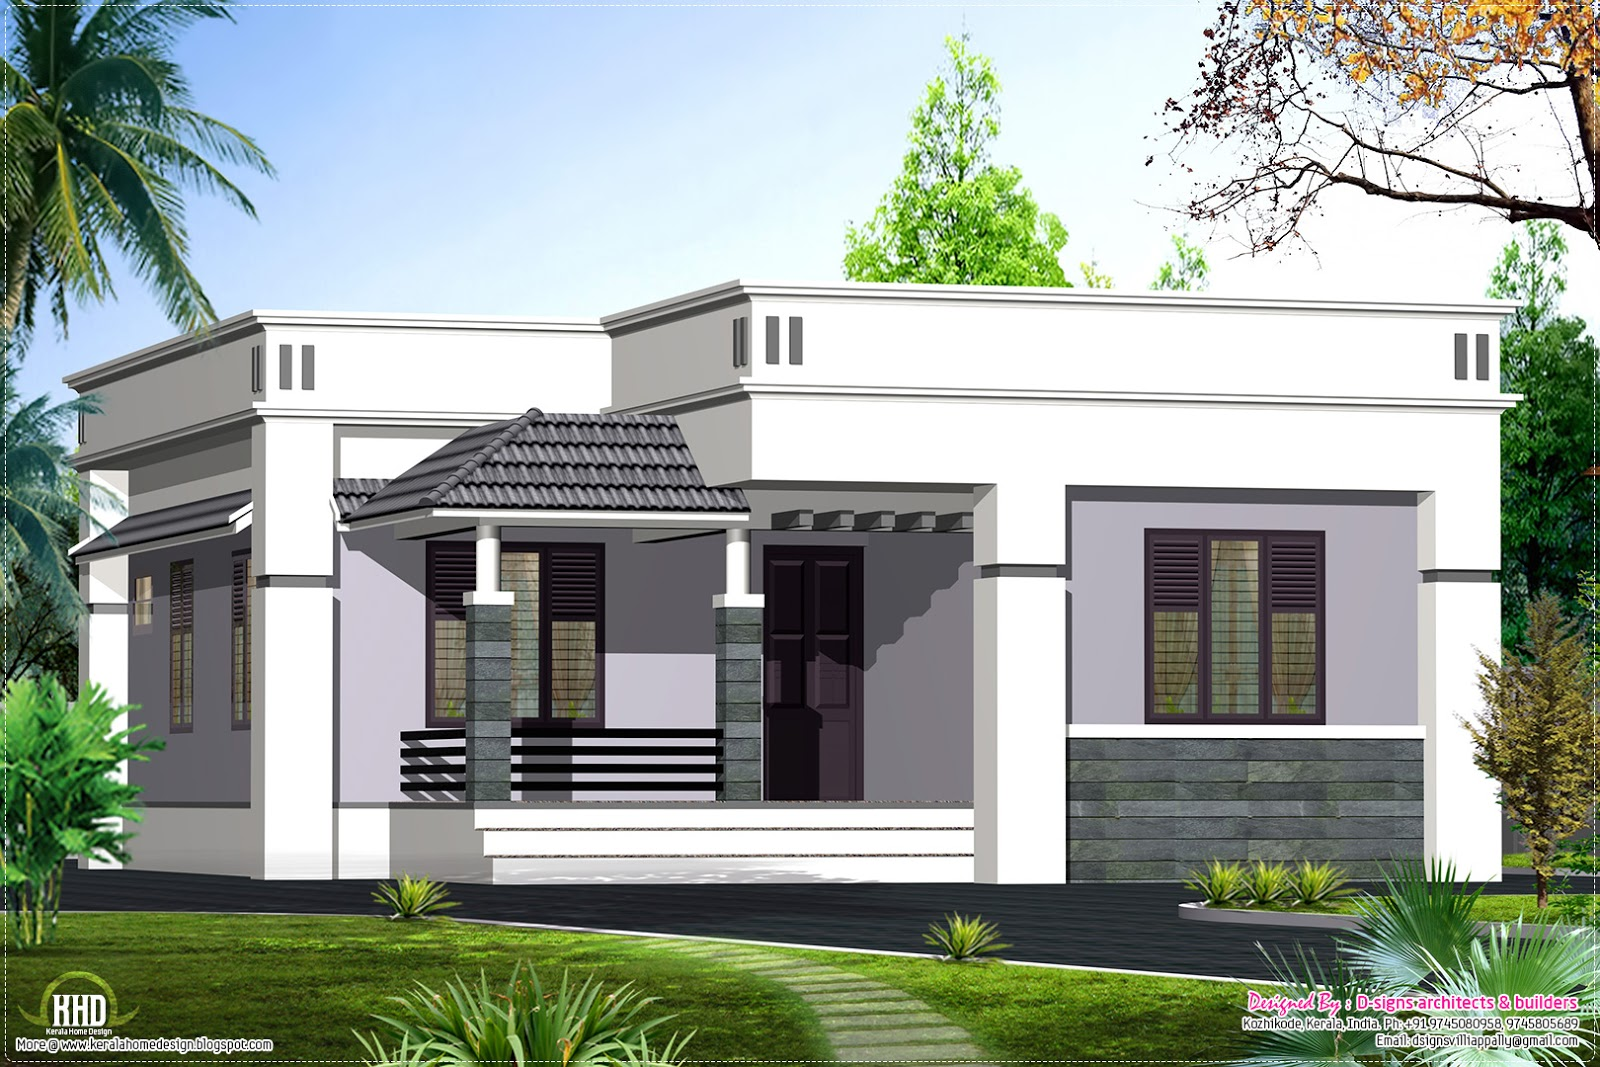 Excellent One Floor House Designs 1600 x 1067 · 394 kB · jpeg